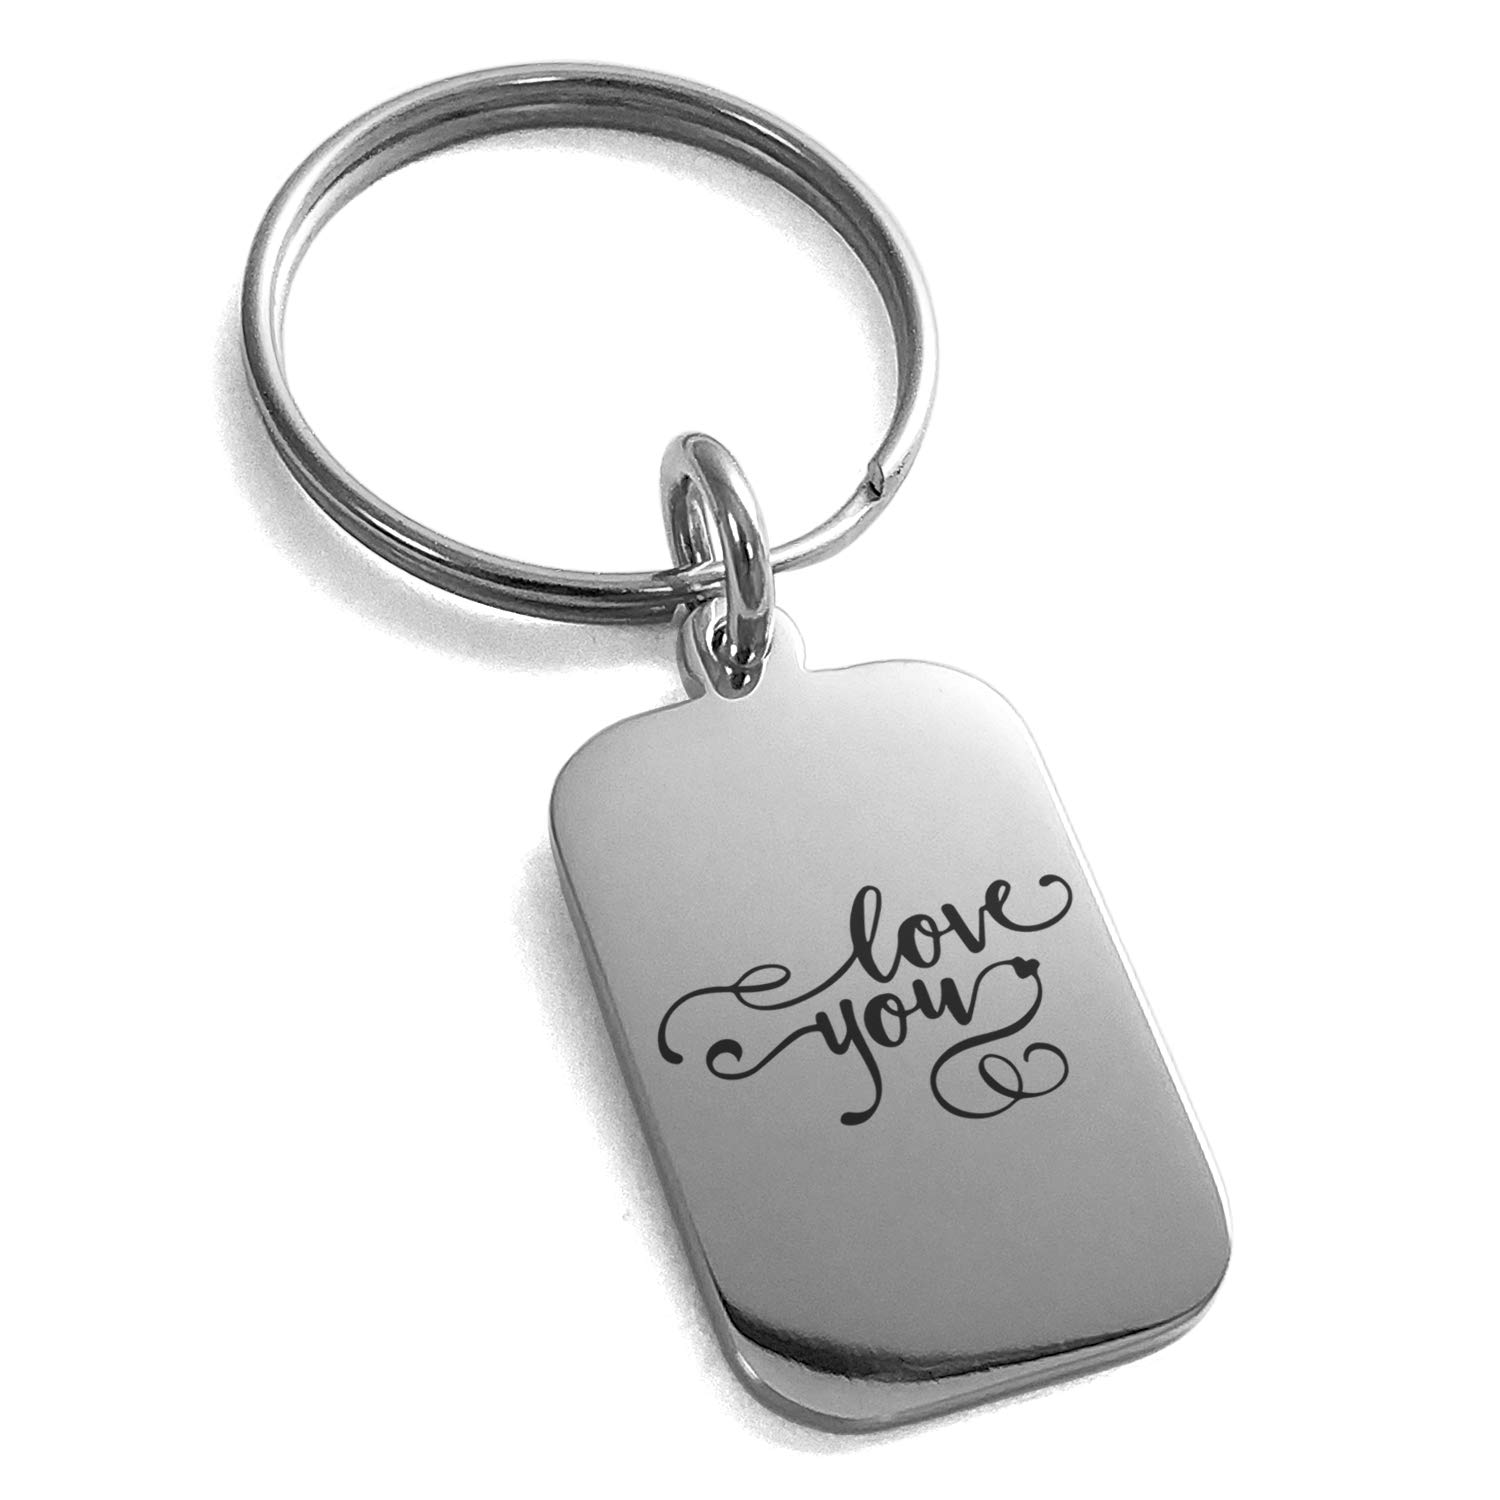 Tioneer Stainless Steel Love You Calligraphy Swirl Engraved Small Rectangle Dog Tag Charm Keychain Keyring